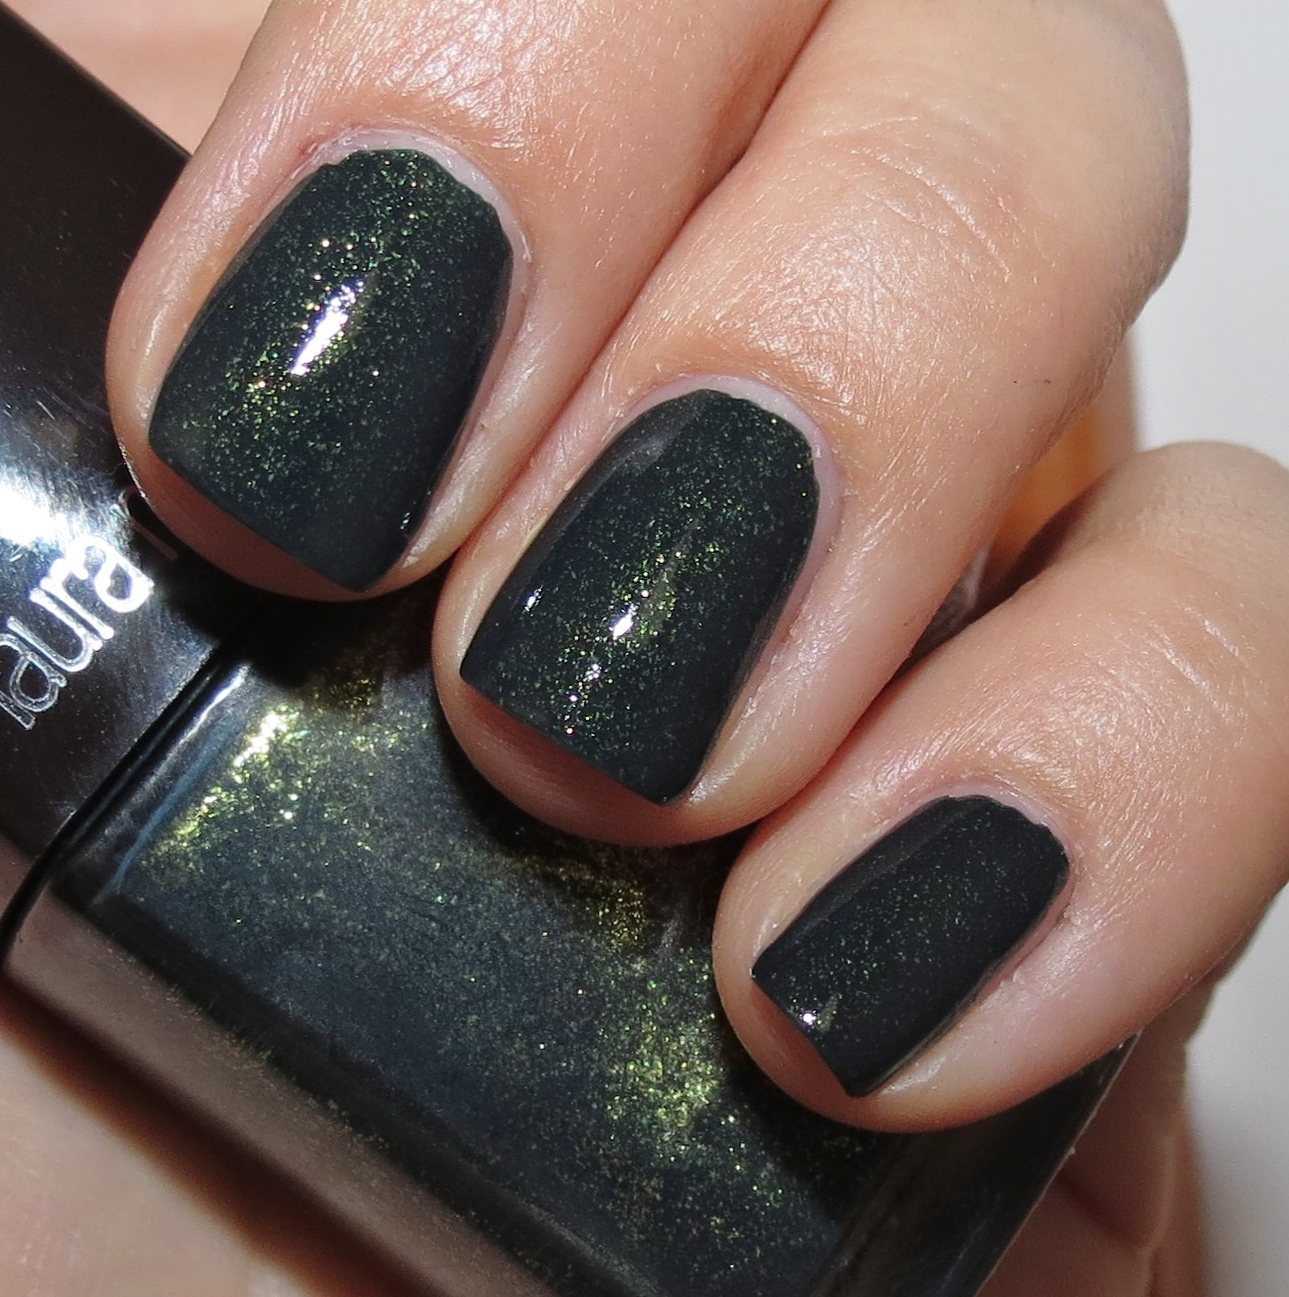 Black Nail Polish Swatch: Laura Mercier BEWITCHED Nail Lacquer Swatches & Review